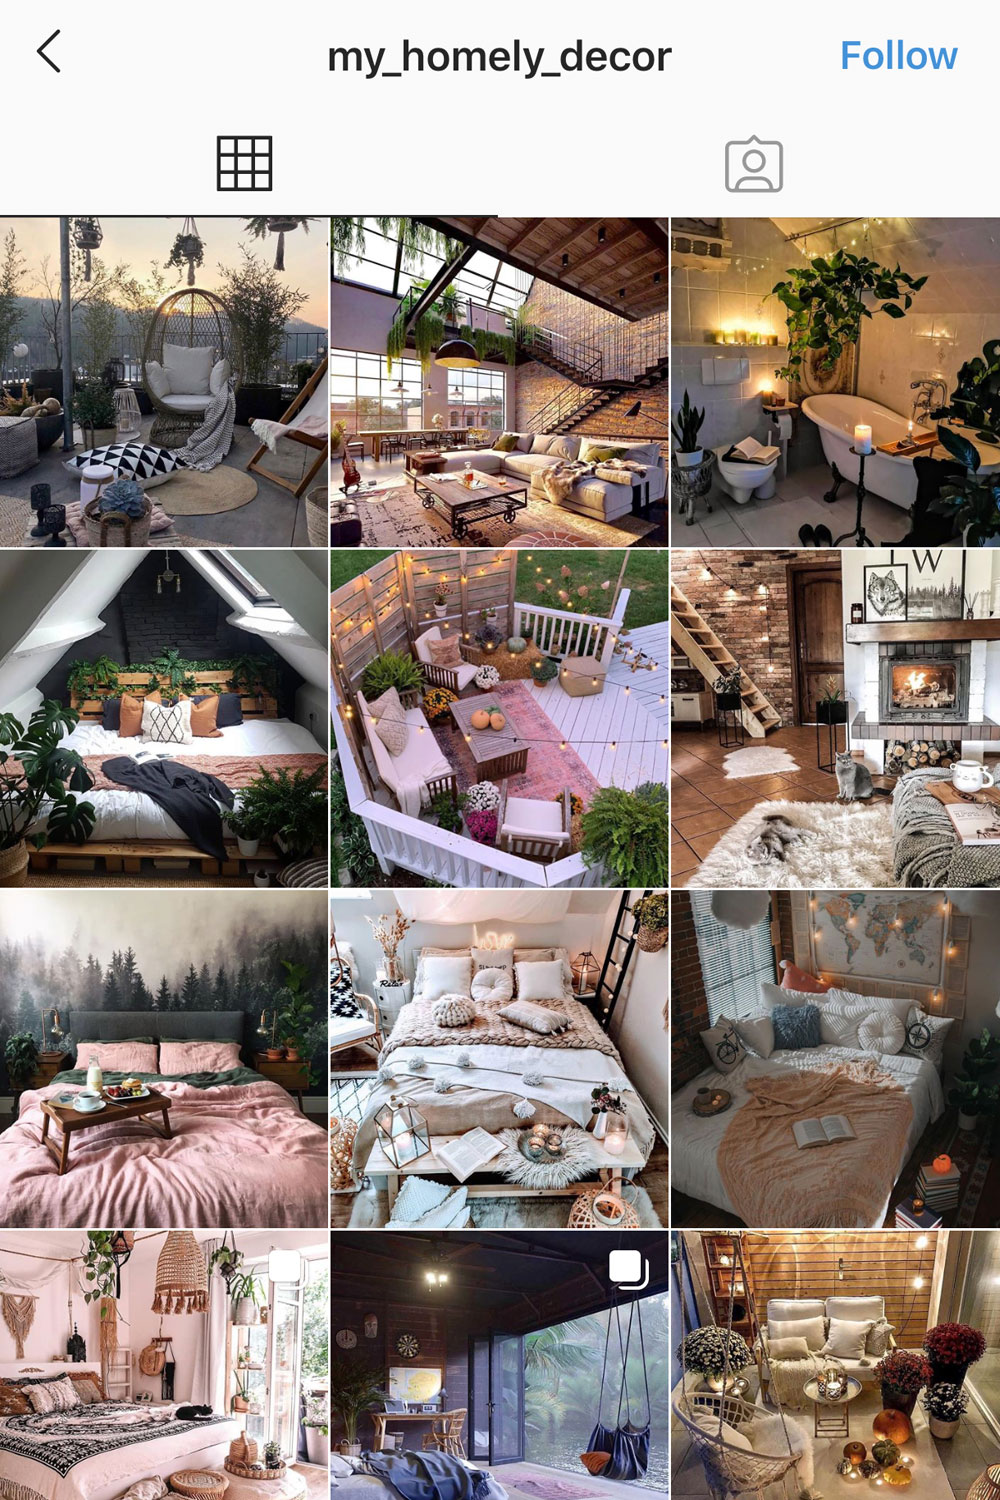 Insta Homes, Instagram Homes, Instagram, Interiors Instagram Accounts, Interiors Instagram, Instagram Interiors, Insta Worthy Homes